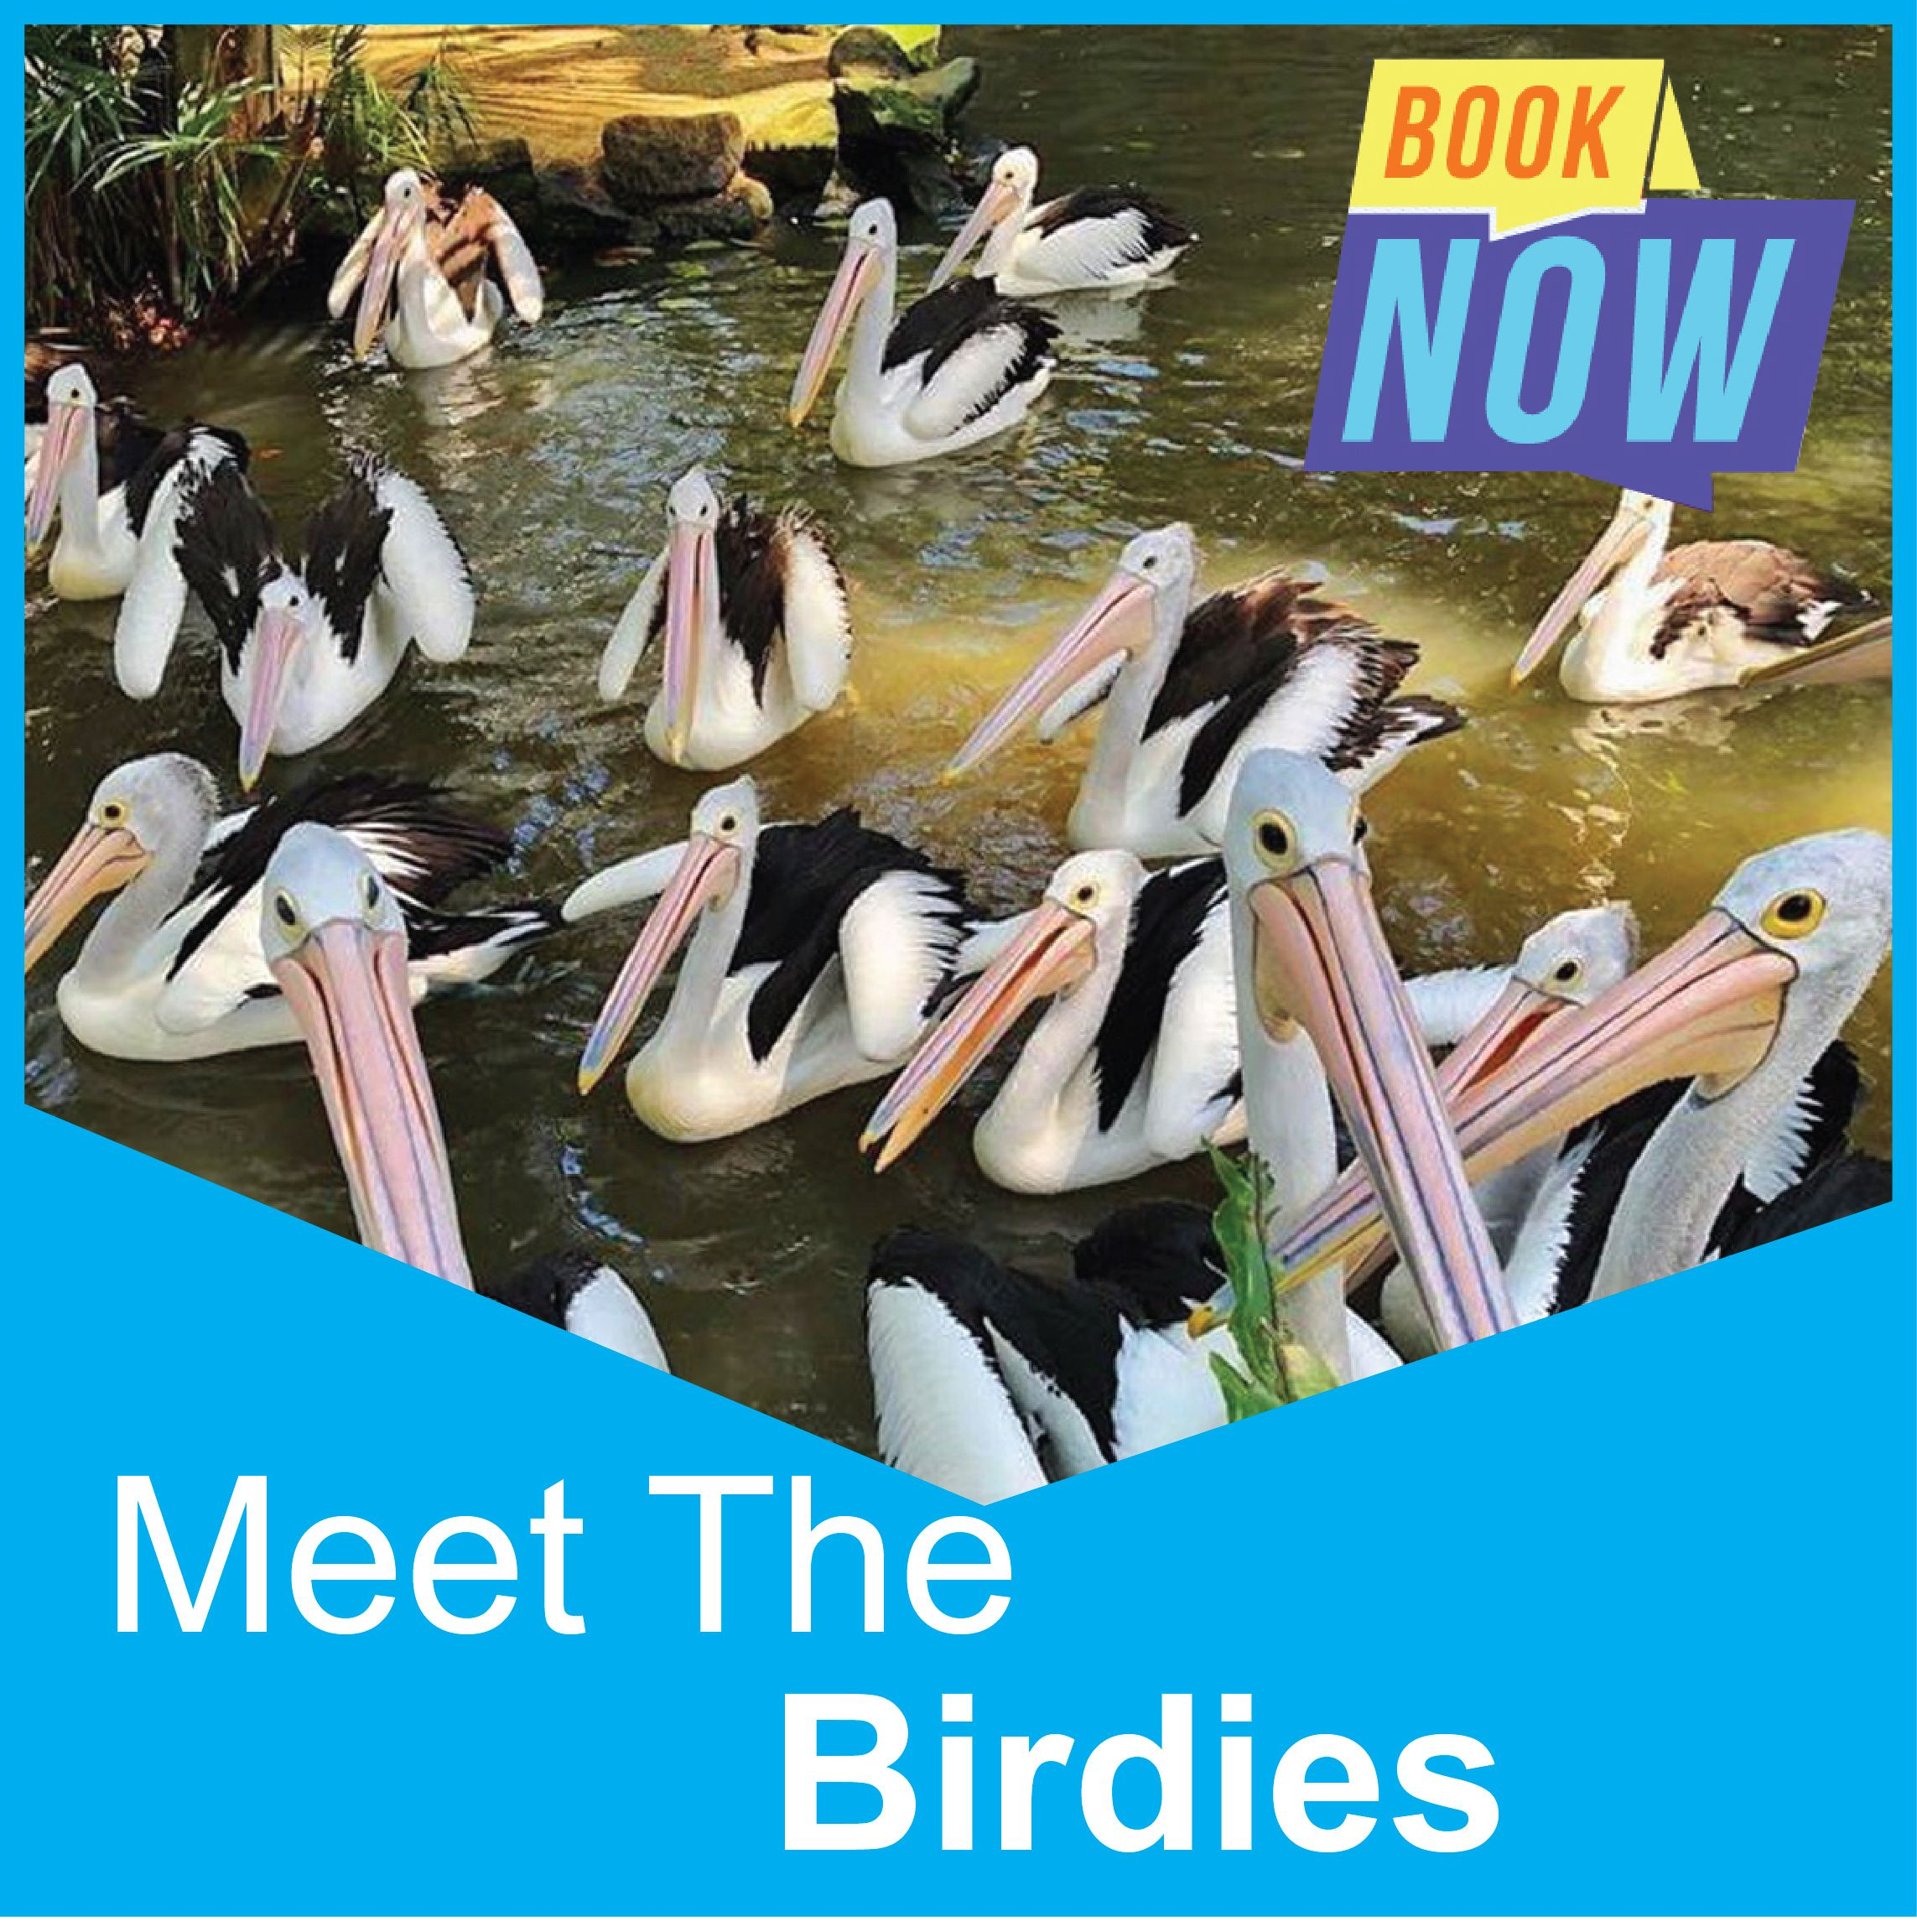 Meet The Birdies